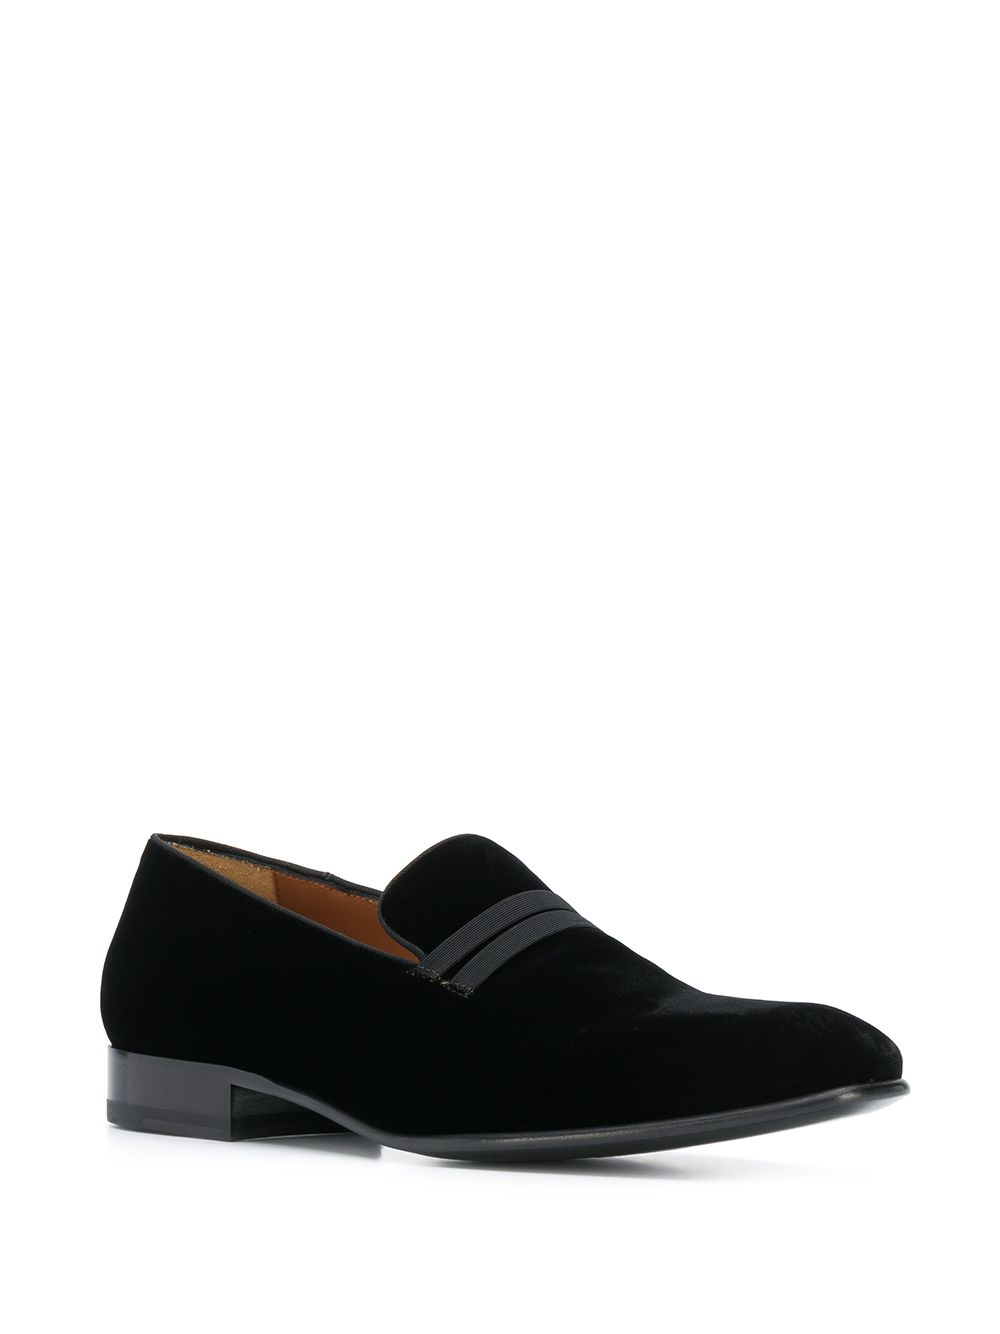 Malone Souliers | Malone Souliers бархатные лоферы Miles | Clouty